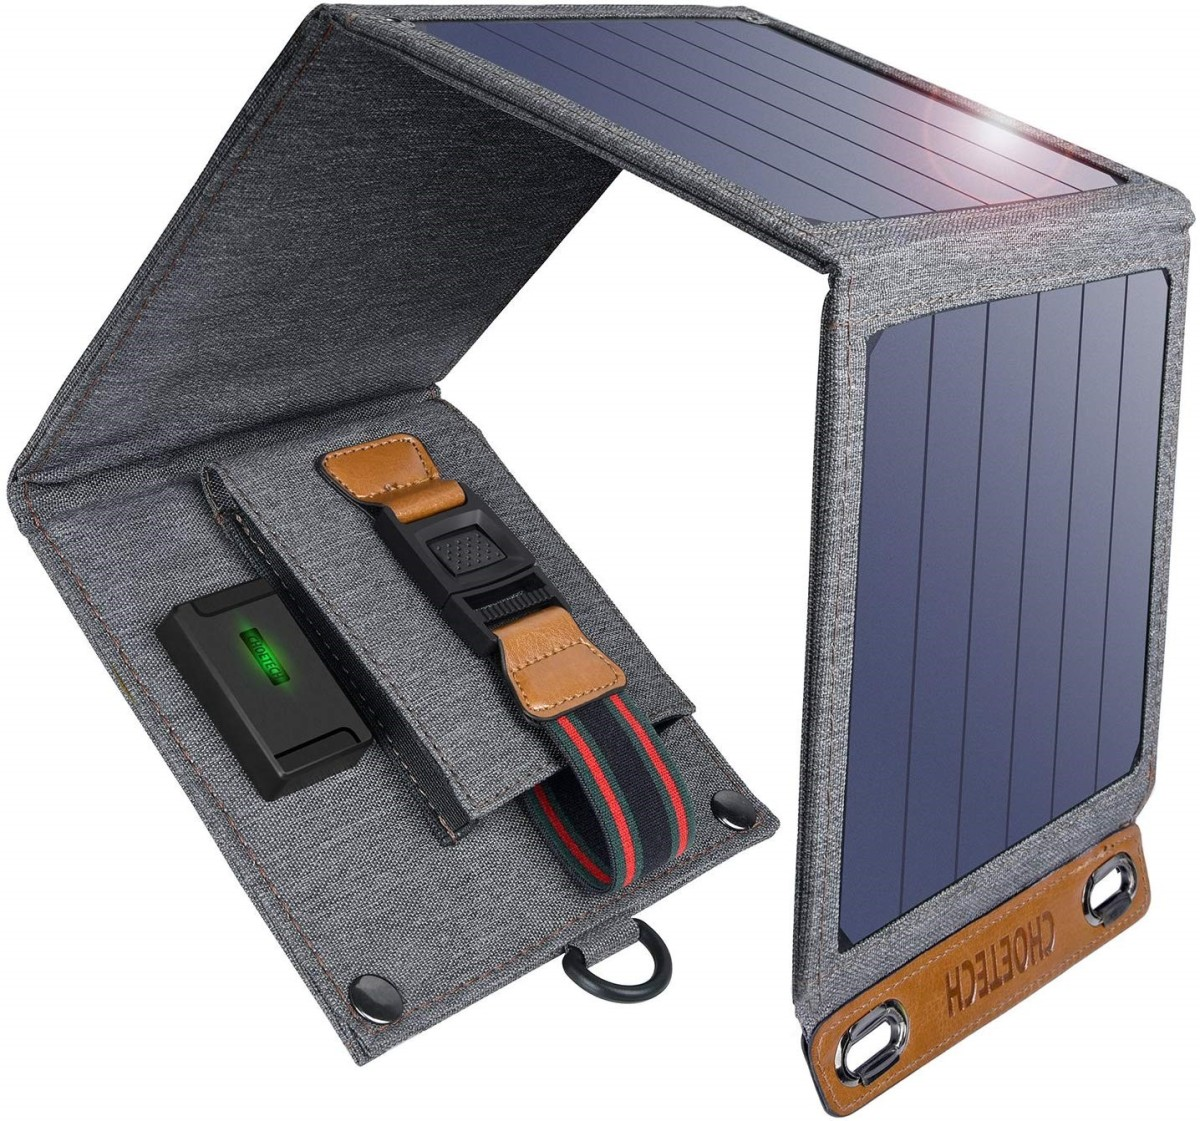 Choetech 14W Foldable Solar Charger